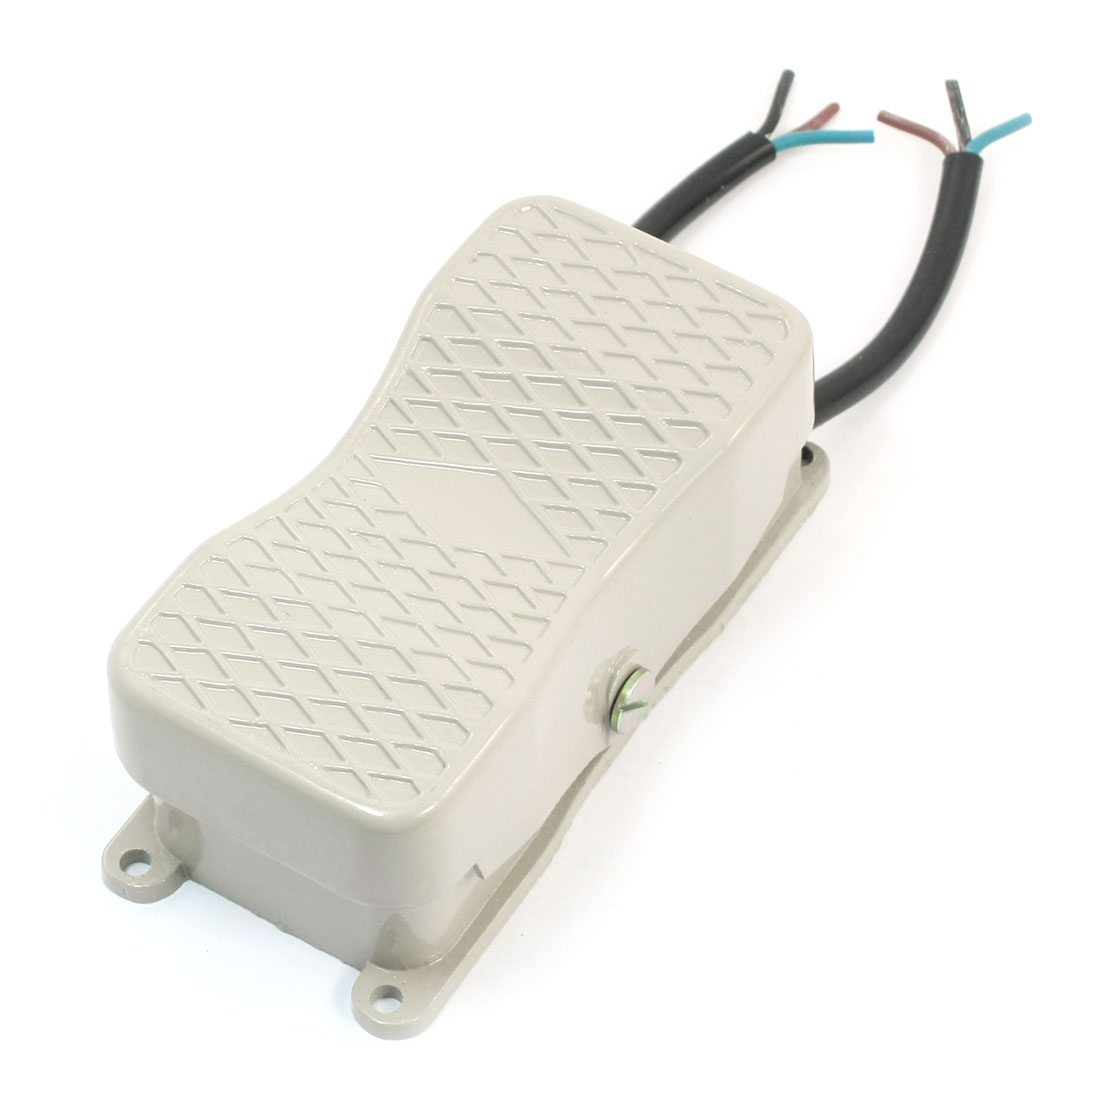 380V 15A SPDT 1NO 1NC Momentary Control Hand Free 2-Wired Nonslip Electric Reversing Foot Pedal Switch YDT1-18